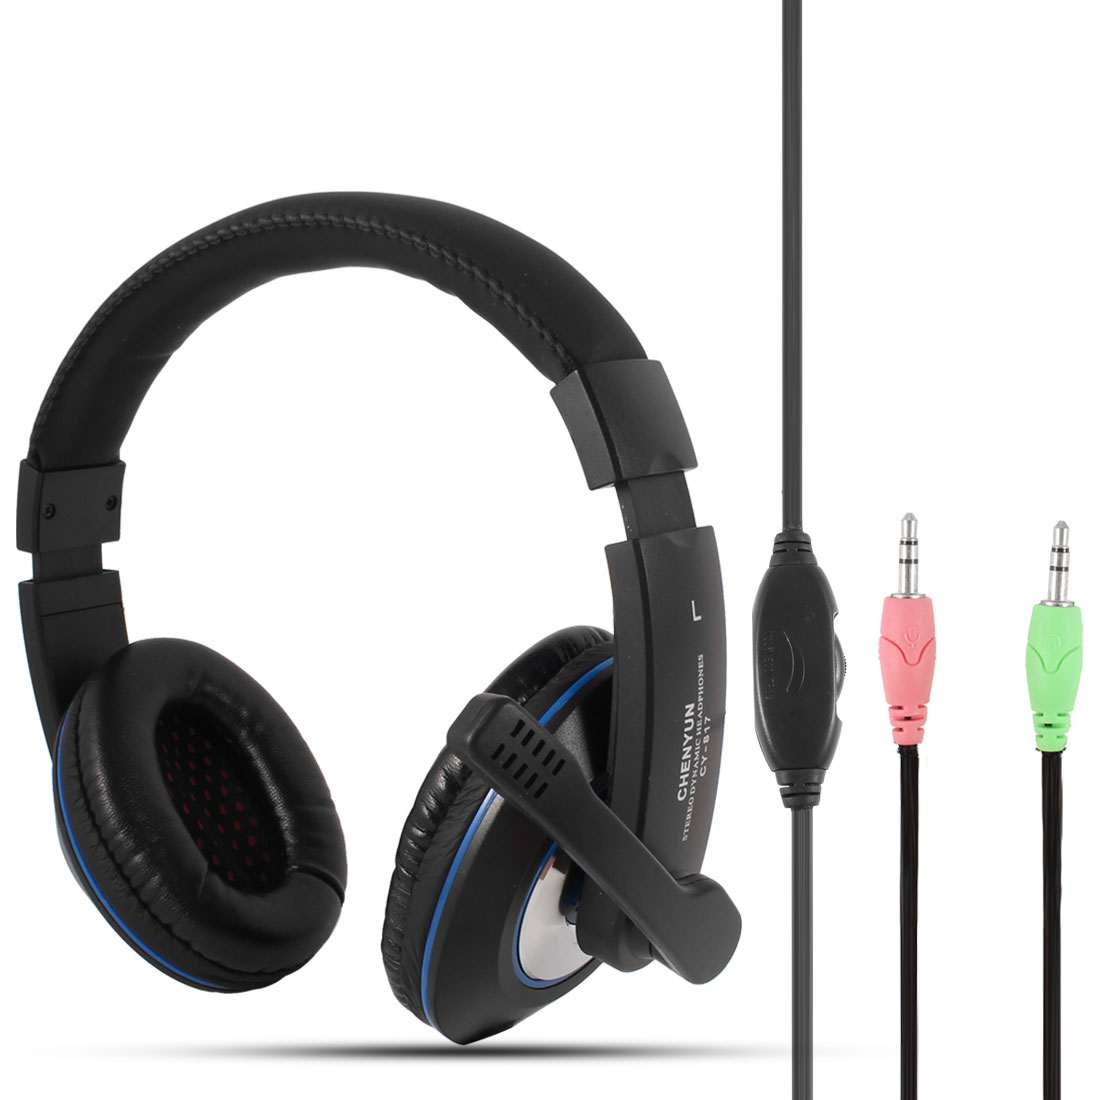 Adjustable Headband 3.5mm Connector Stereo Multimedia Headphone w Mic for PC Laptop